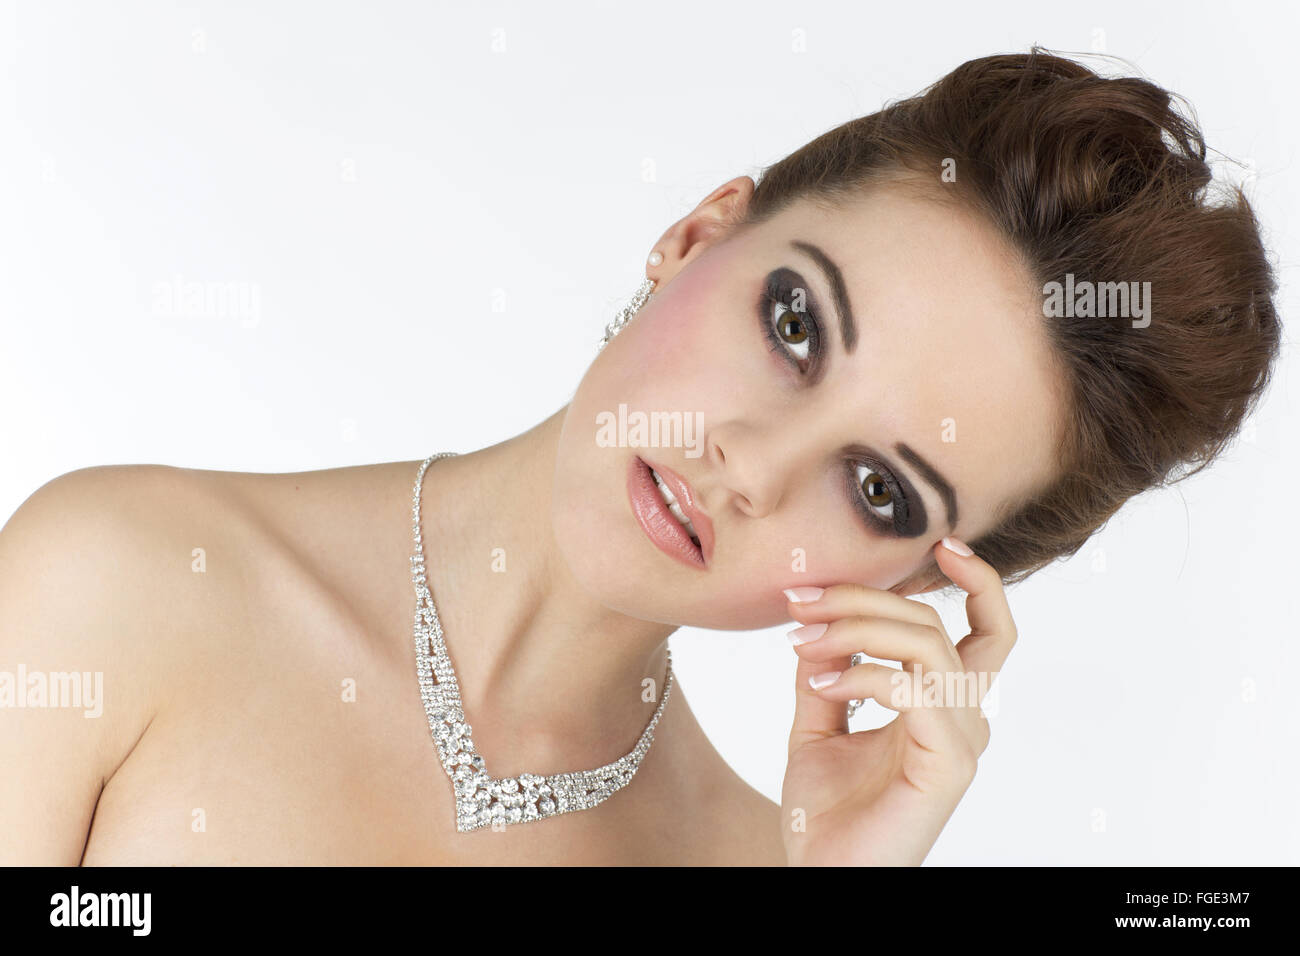 Young woman with jewelry, Portrait Stock Photo